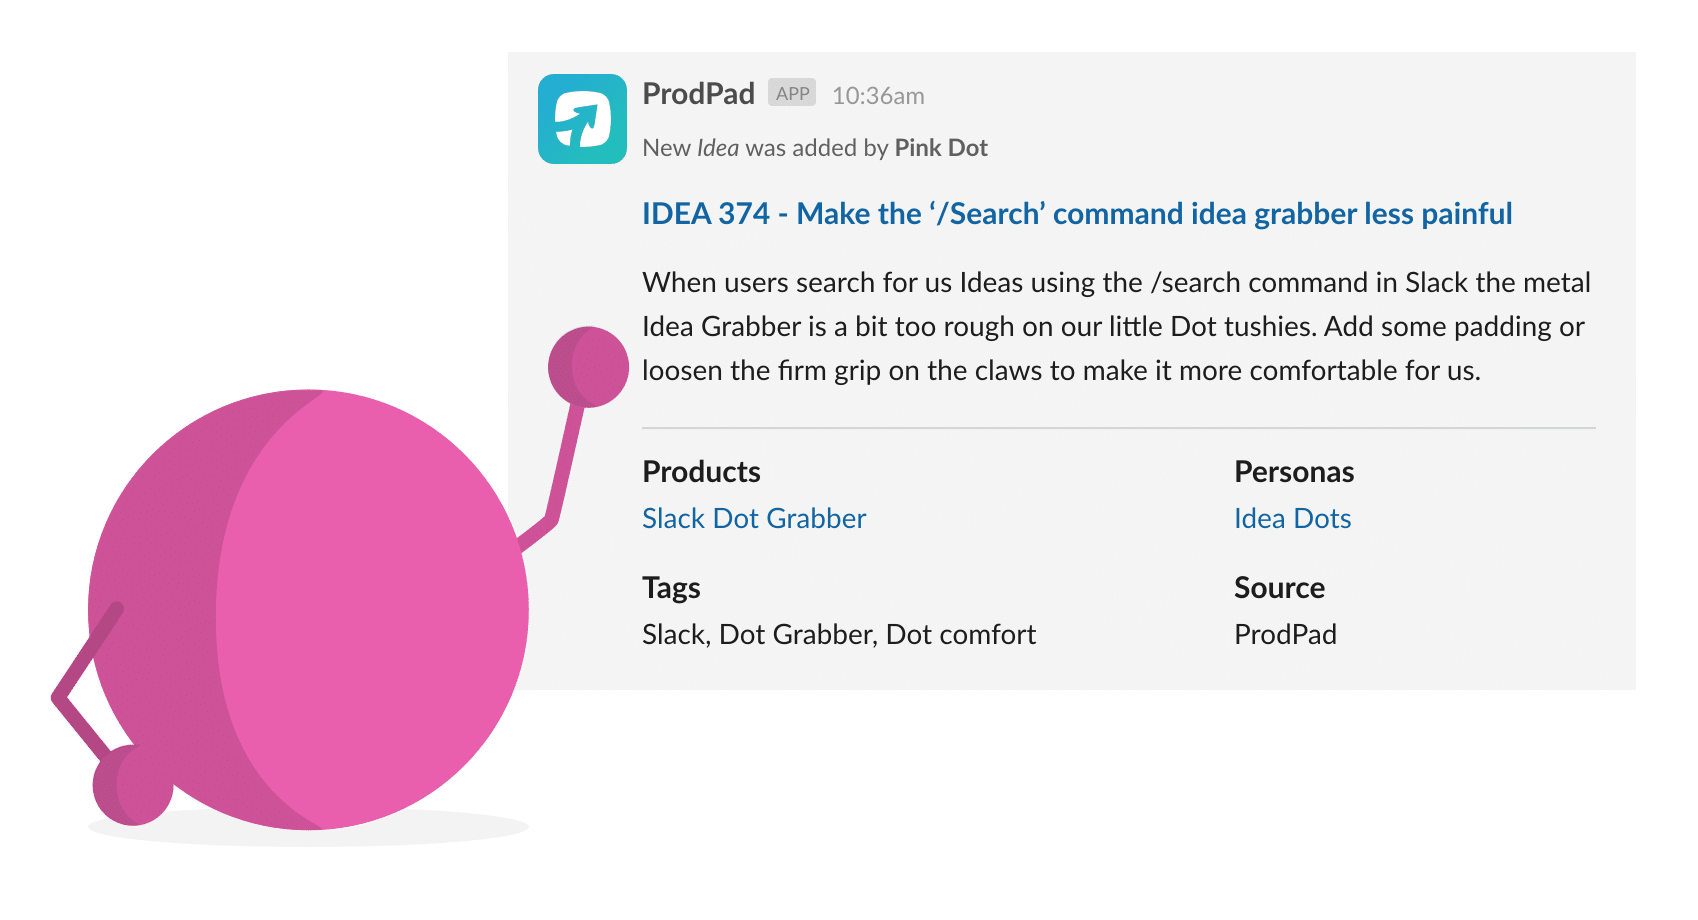 You can add new ideas to ProdPad from slack. Perfect for remote collaboration.